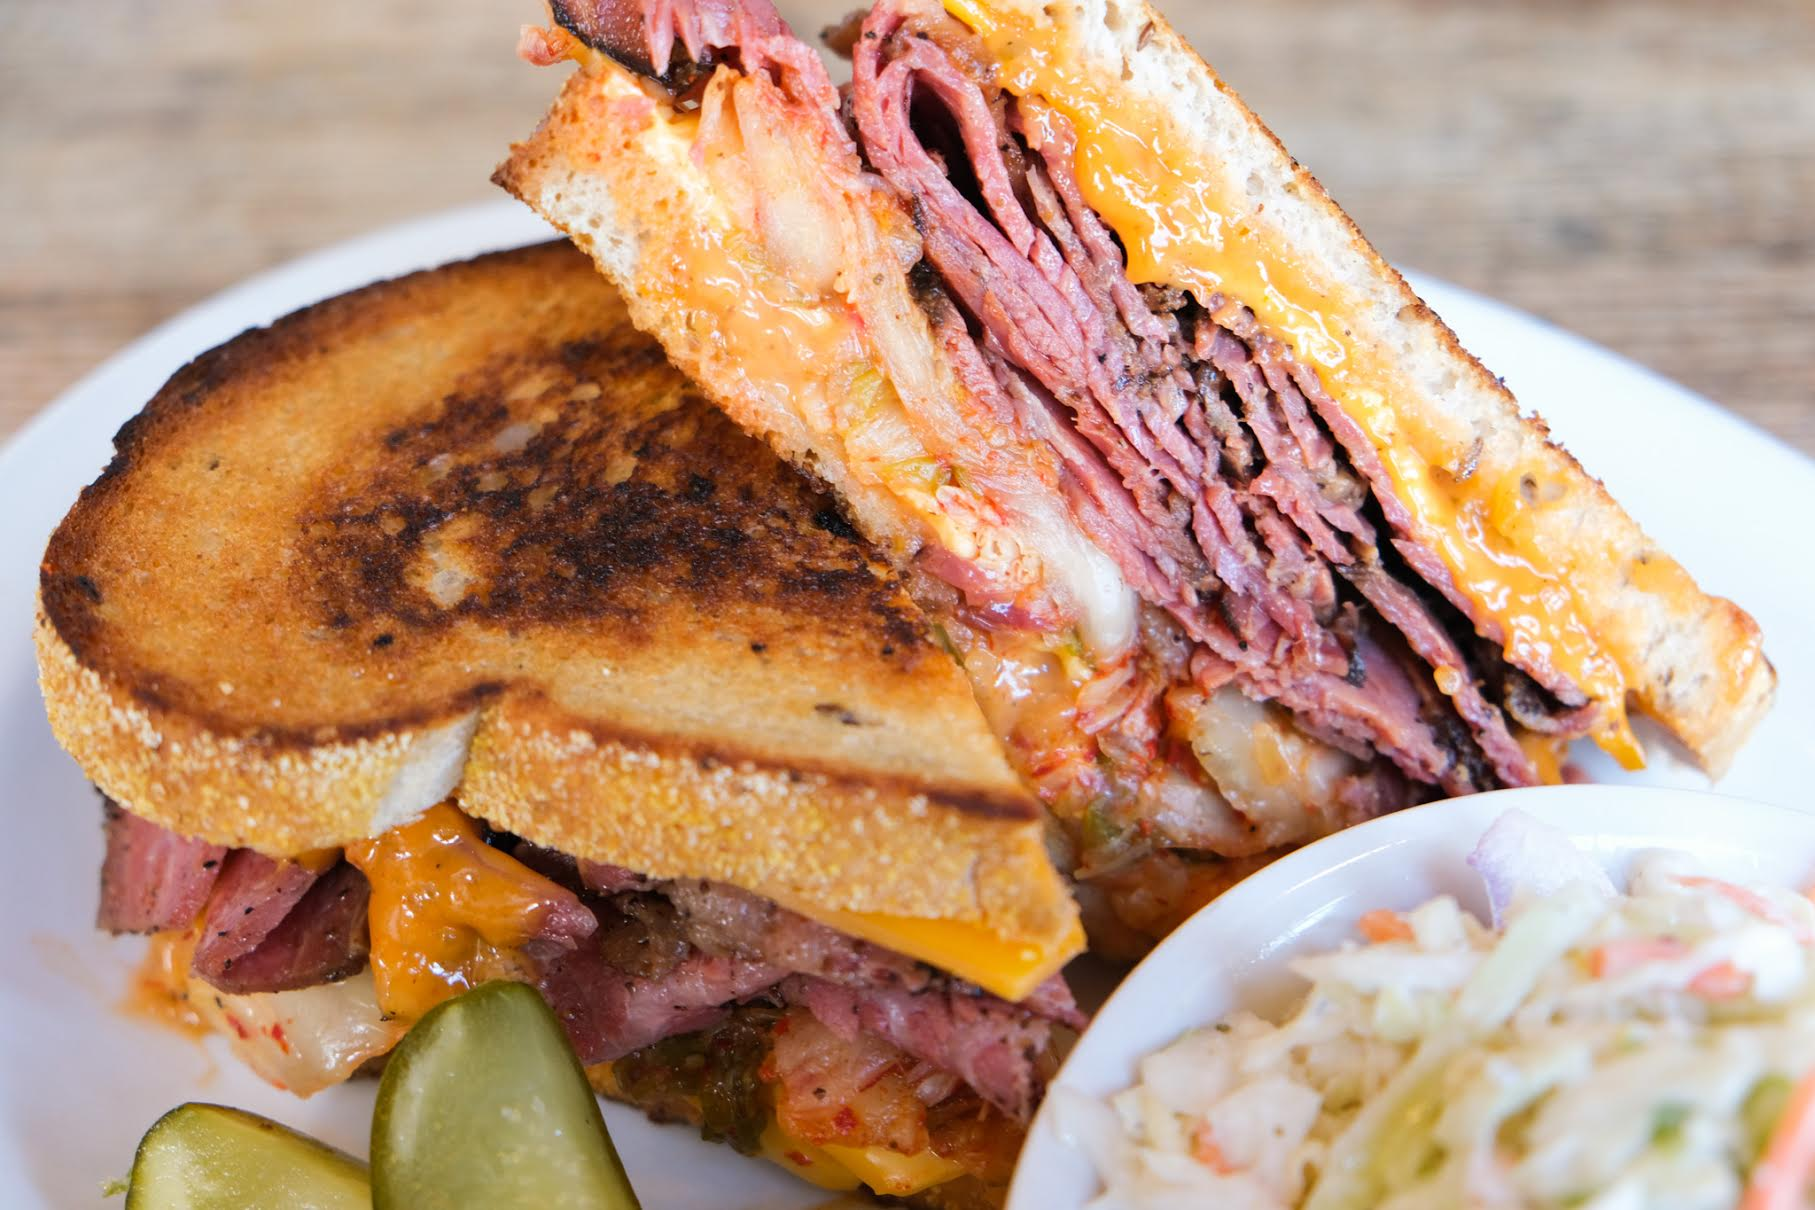 Two halves of a kimchi Reuben sandwich stacked on top of one another, with a small tub of coleslaw in the foreground